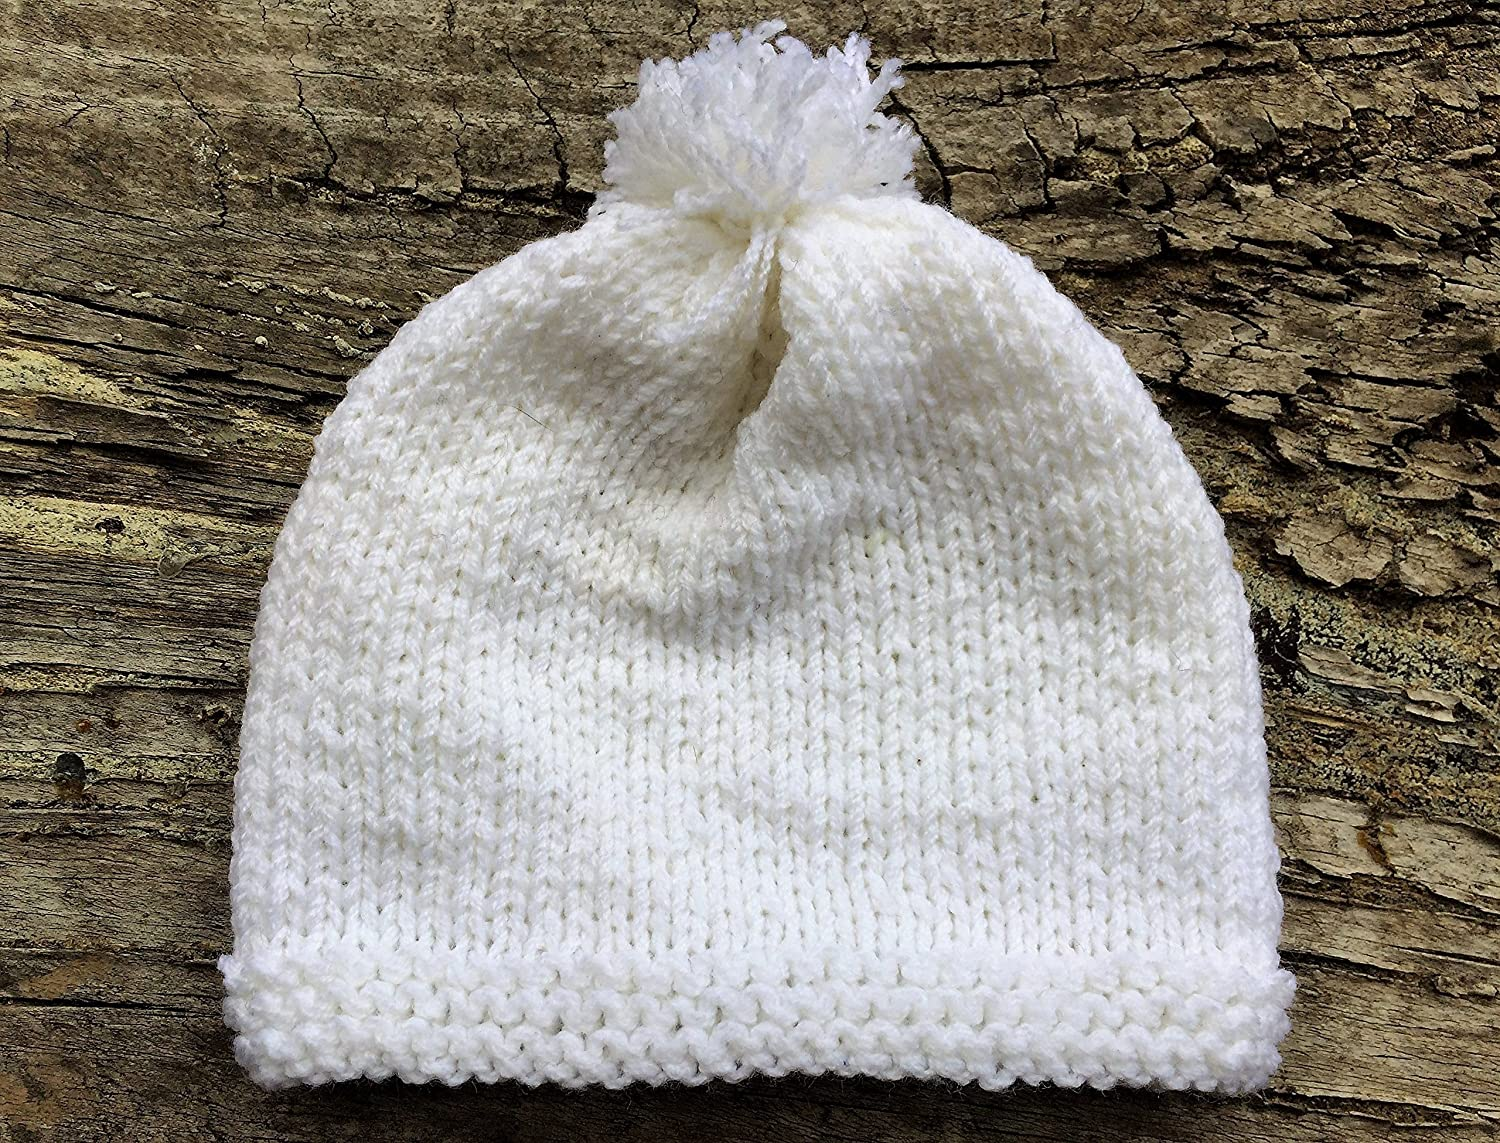 Baby Hat. White Baby Hat with Pompom. Free Shipping. Made of very soft wool  blend yarn. Gorgeous vintage design. Made for babies with 25-30 (preemie)  and ... a68d4bb7497a